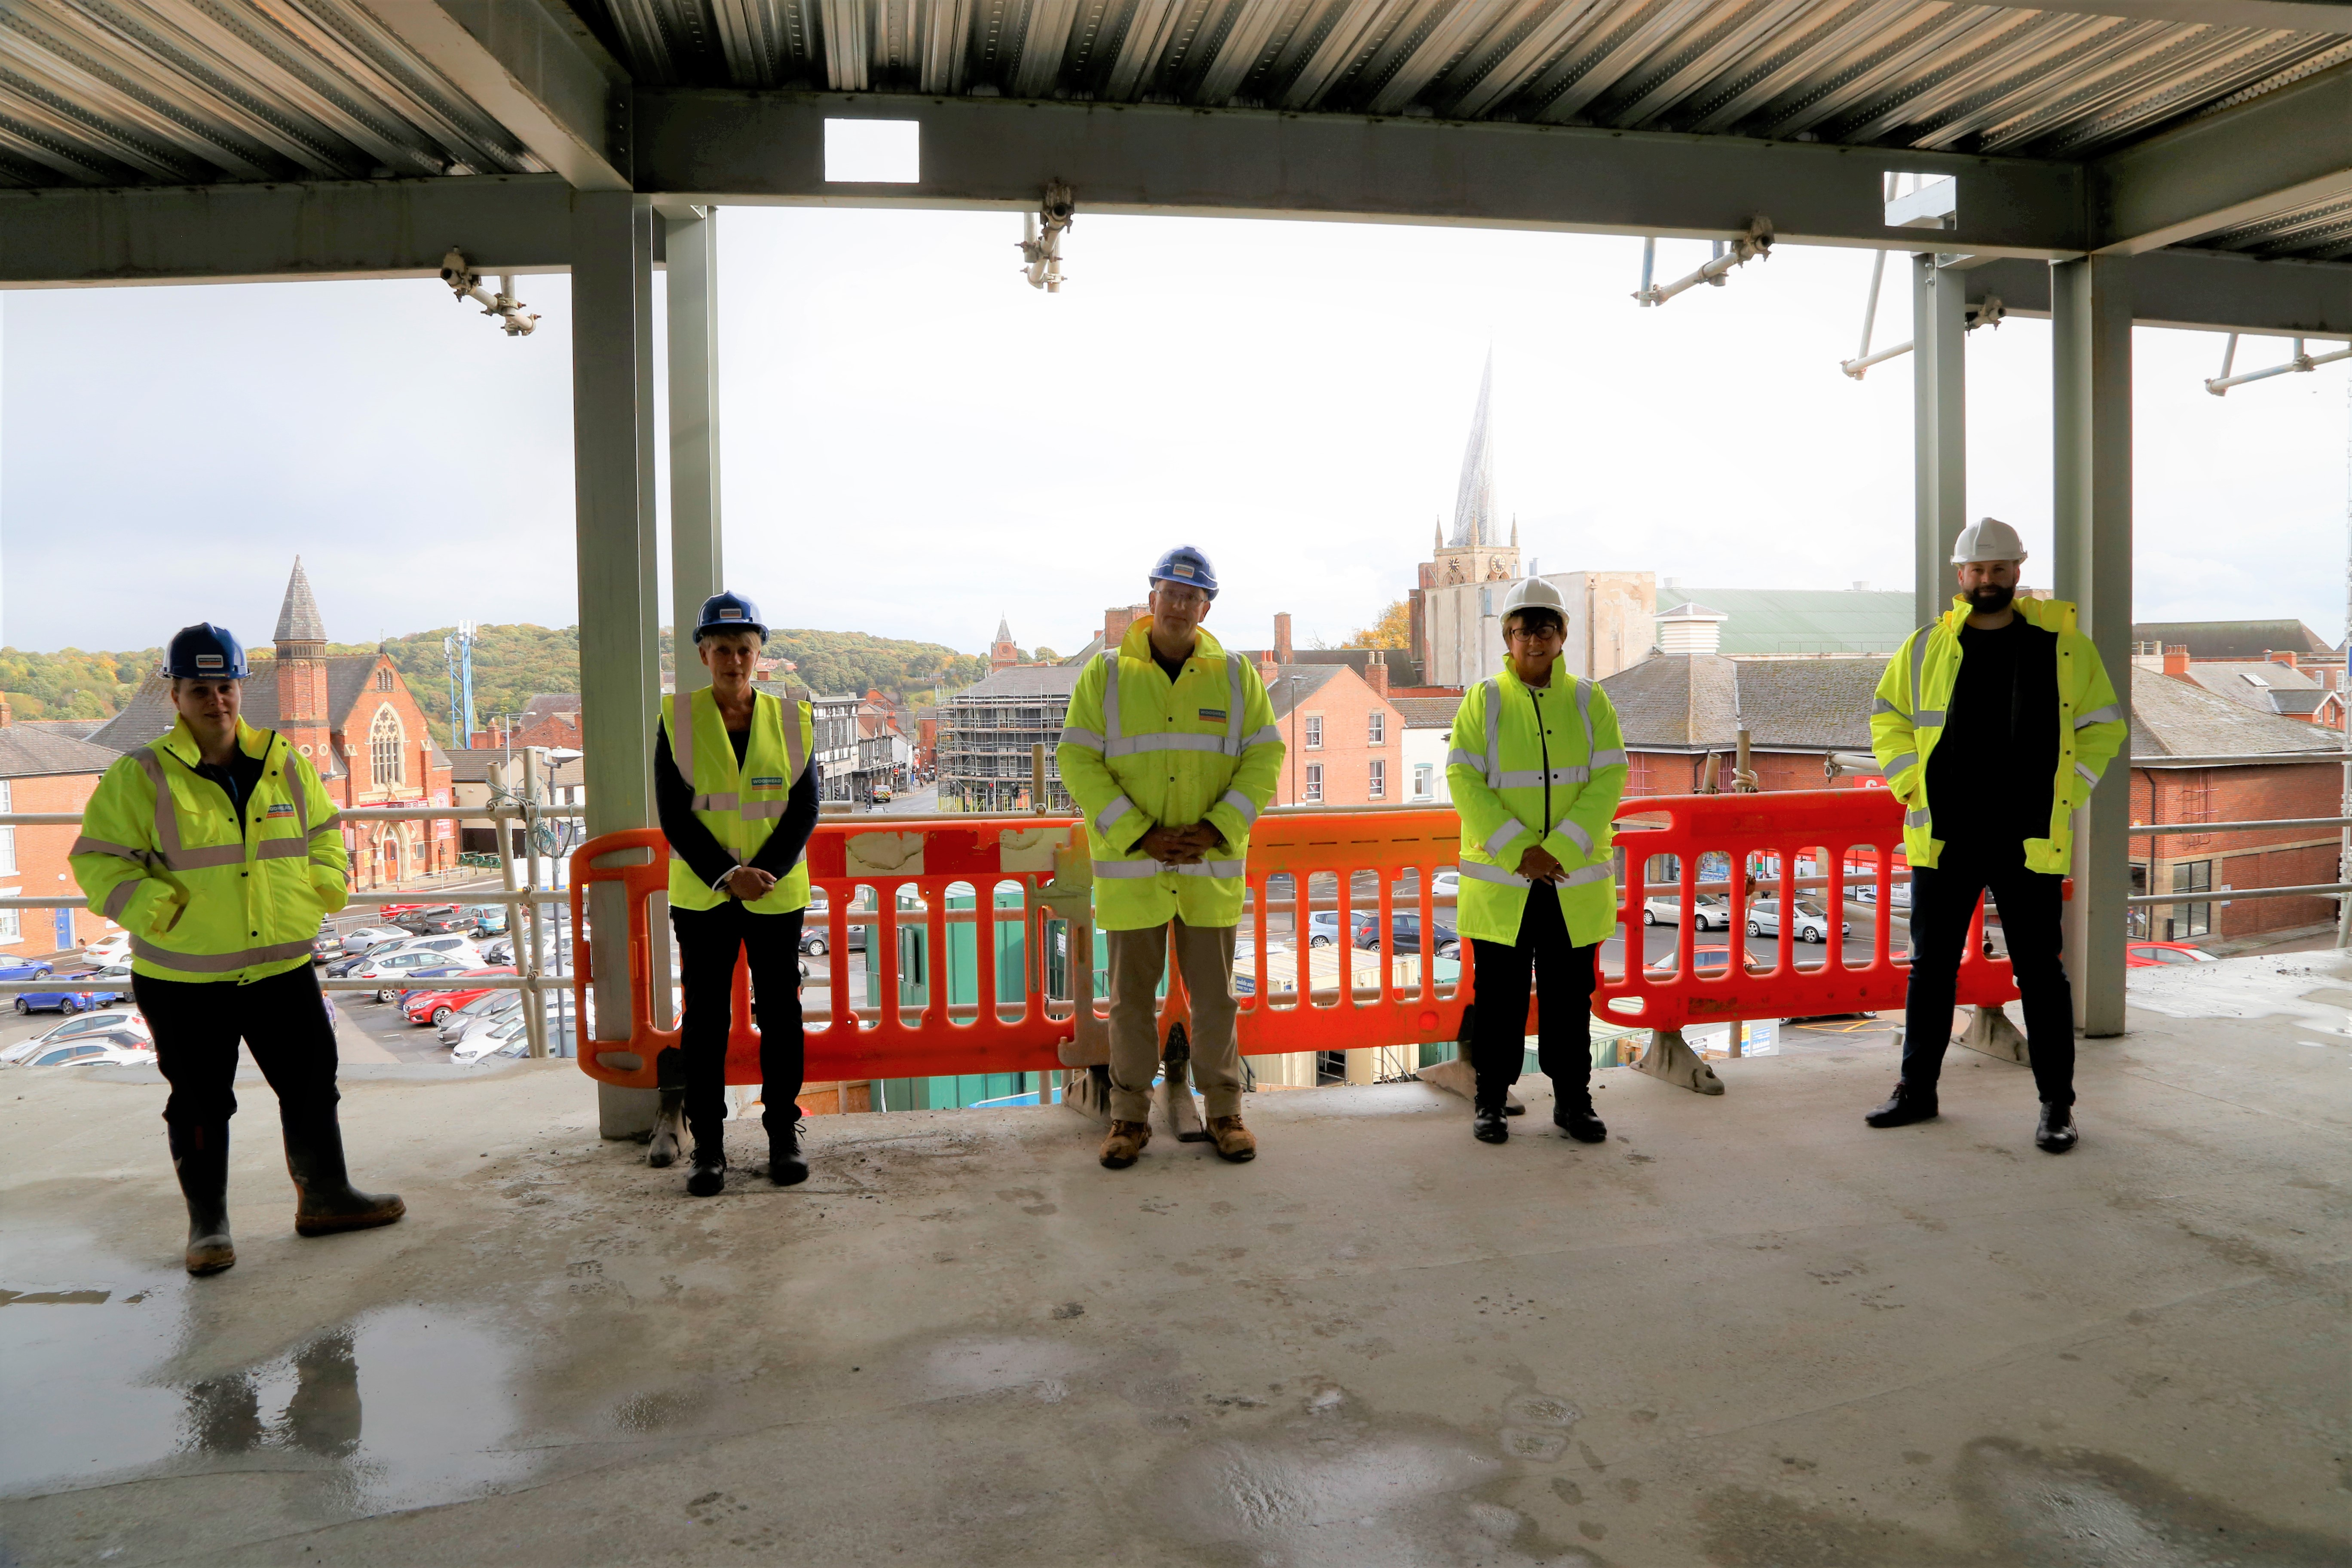 Chesterfield Borough Council - Mentoring Programme Launches at Key Project Milestone